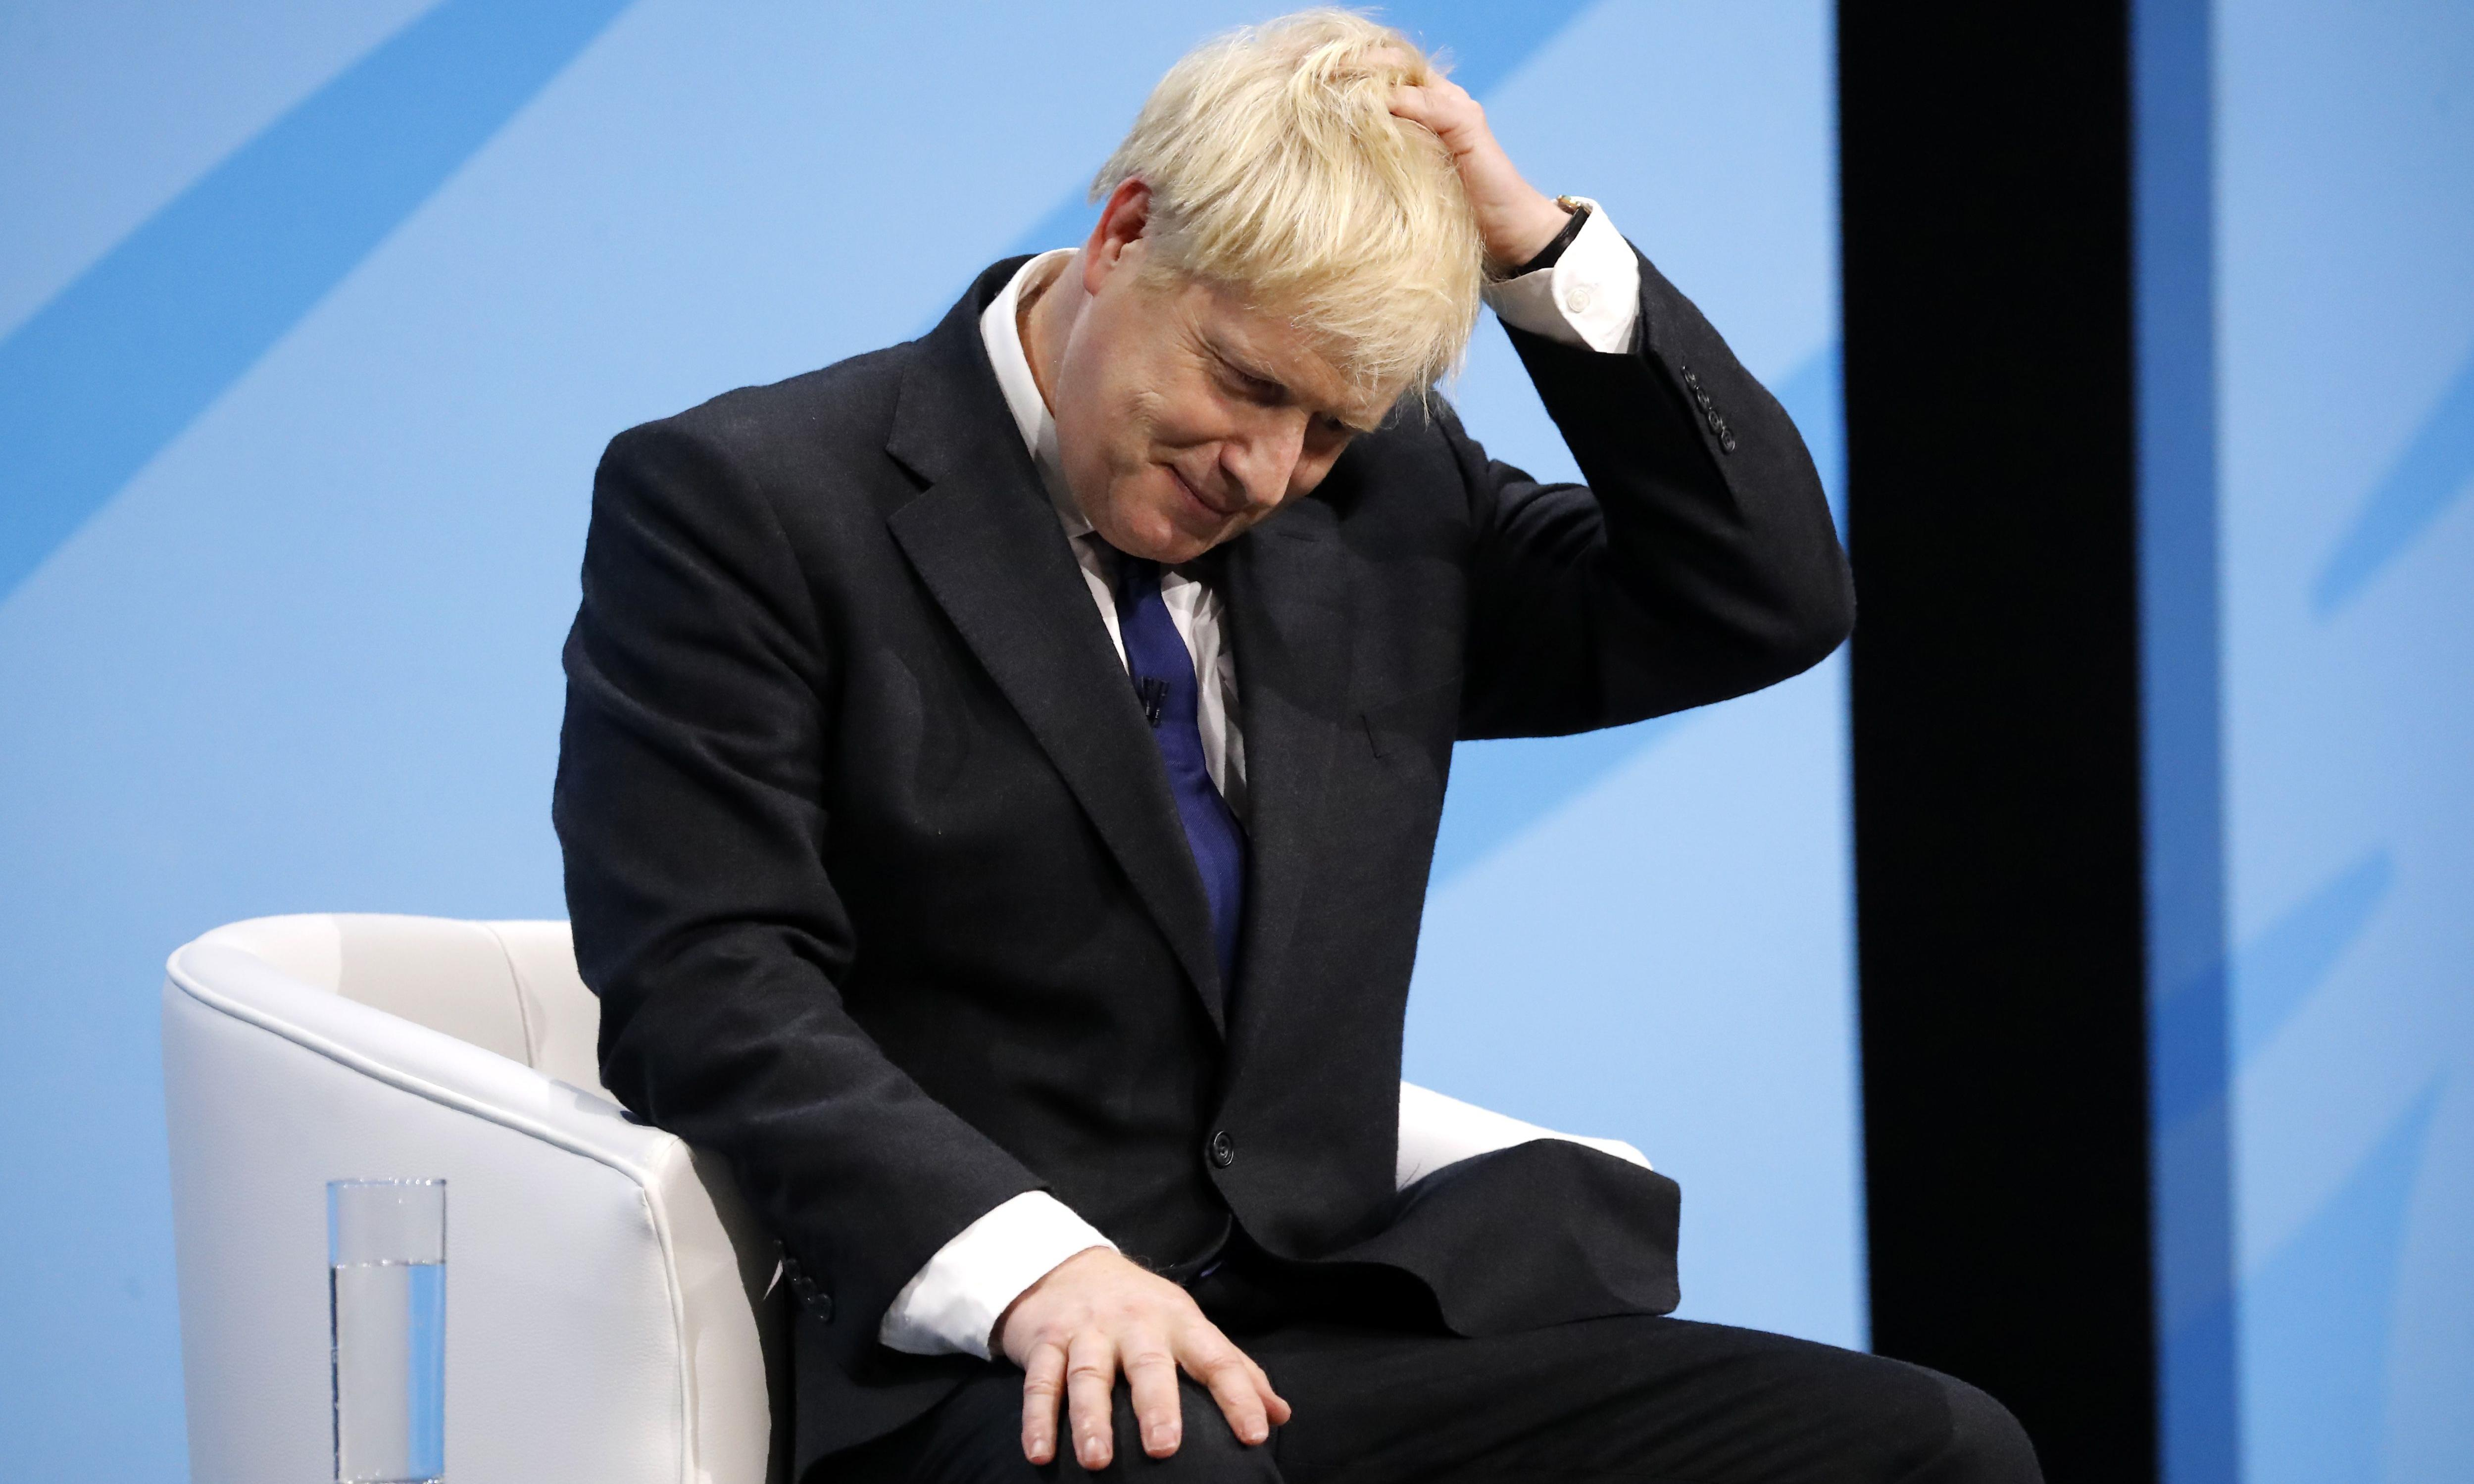 As your old friend, Boris, I'm asking you to stop Brexit